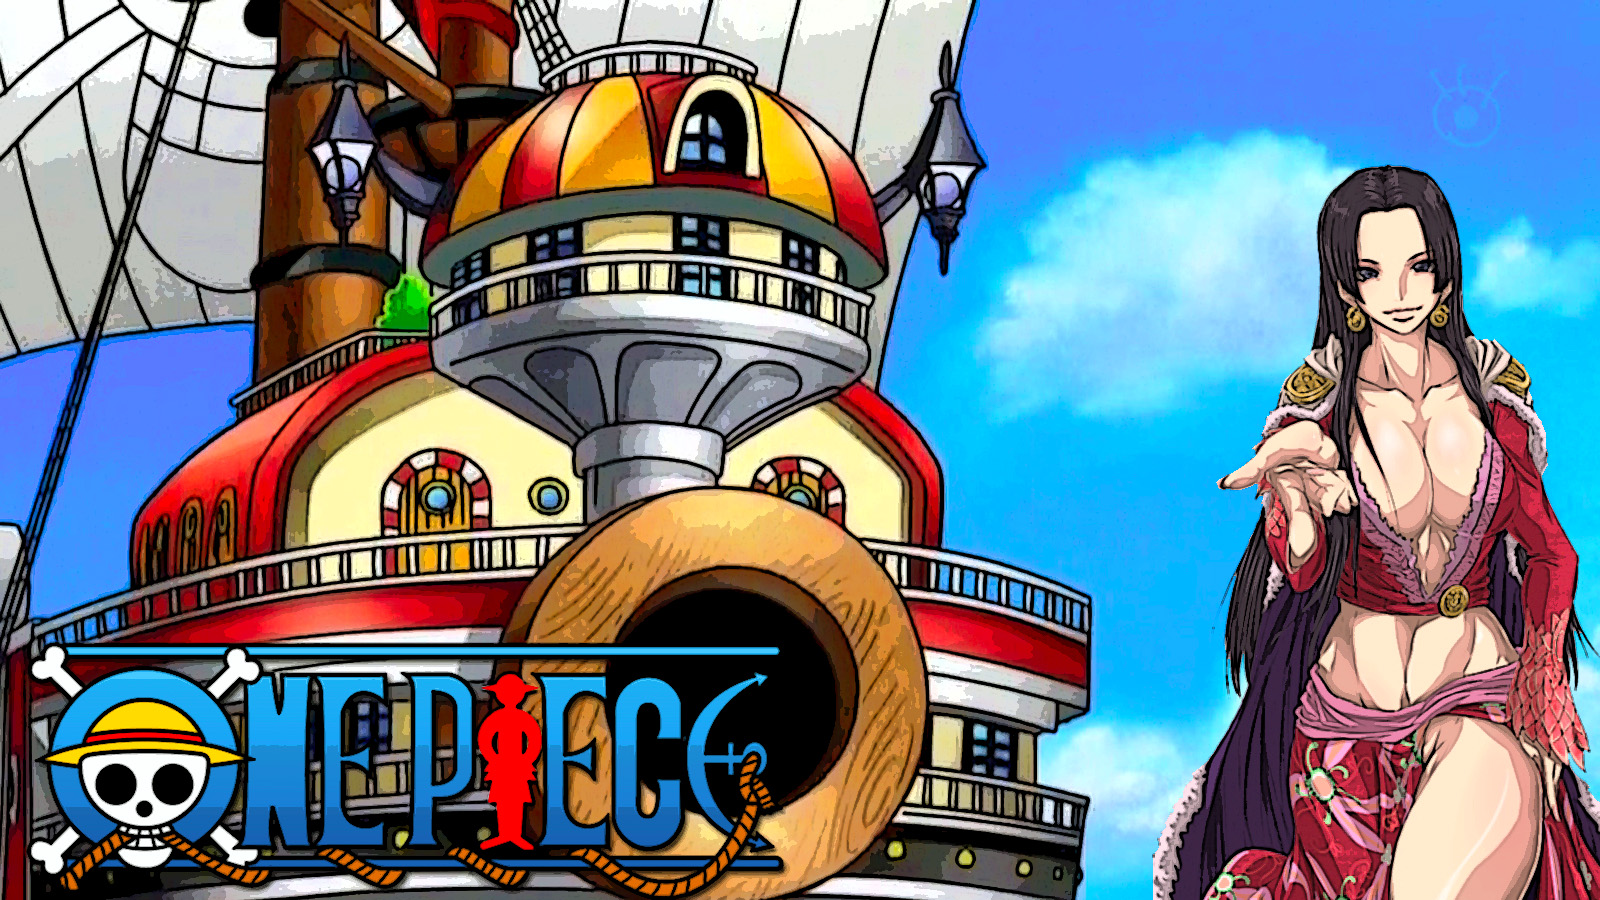 Free Hd Car Wallpapers For Pc Download Hancock One Piece Wallpaper Gallery